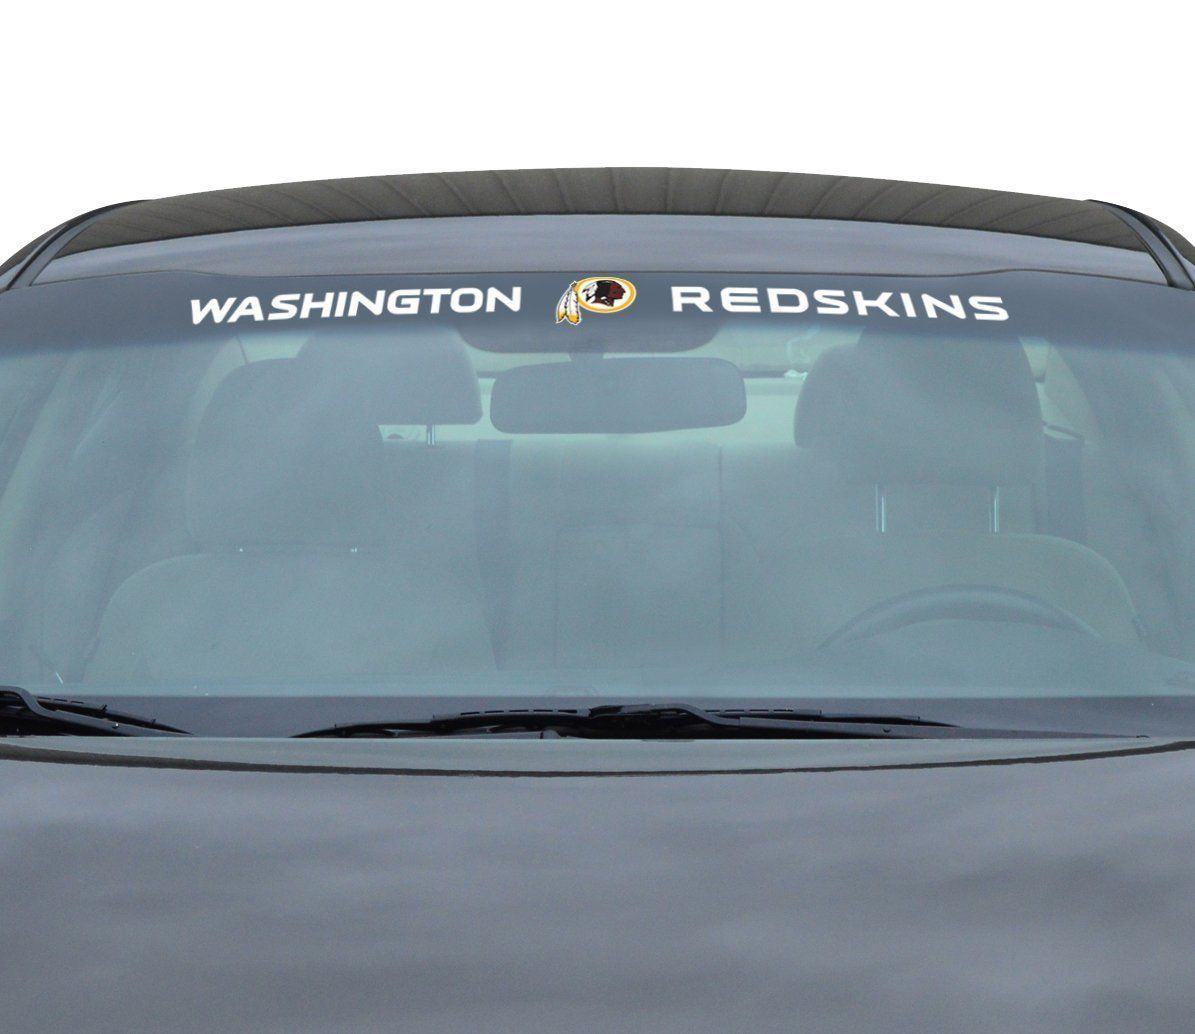 "WASHINGTON REDSKINS 35"" X 4"" WINDSHIELD REAR WINDOW DECAL CAR TRUCK NFL FOOTBALL"